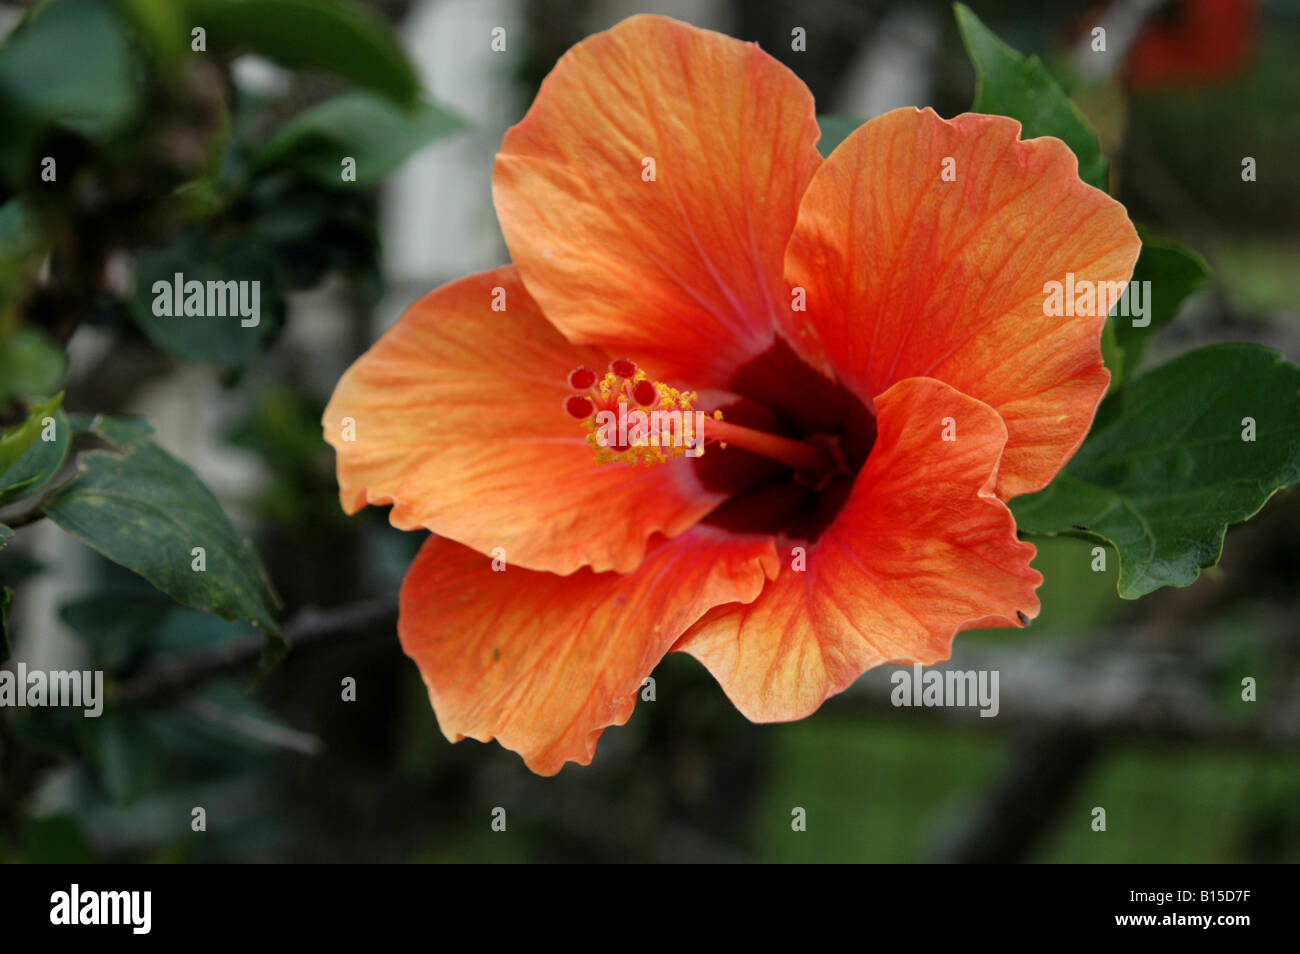 close-up of a orange color hibiscus flower Stock Photo: 17945187 - Alamy